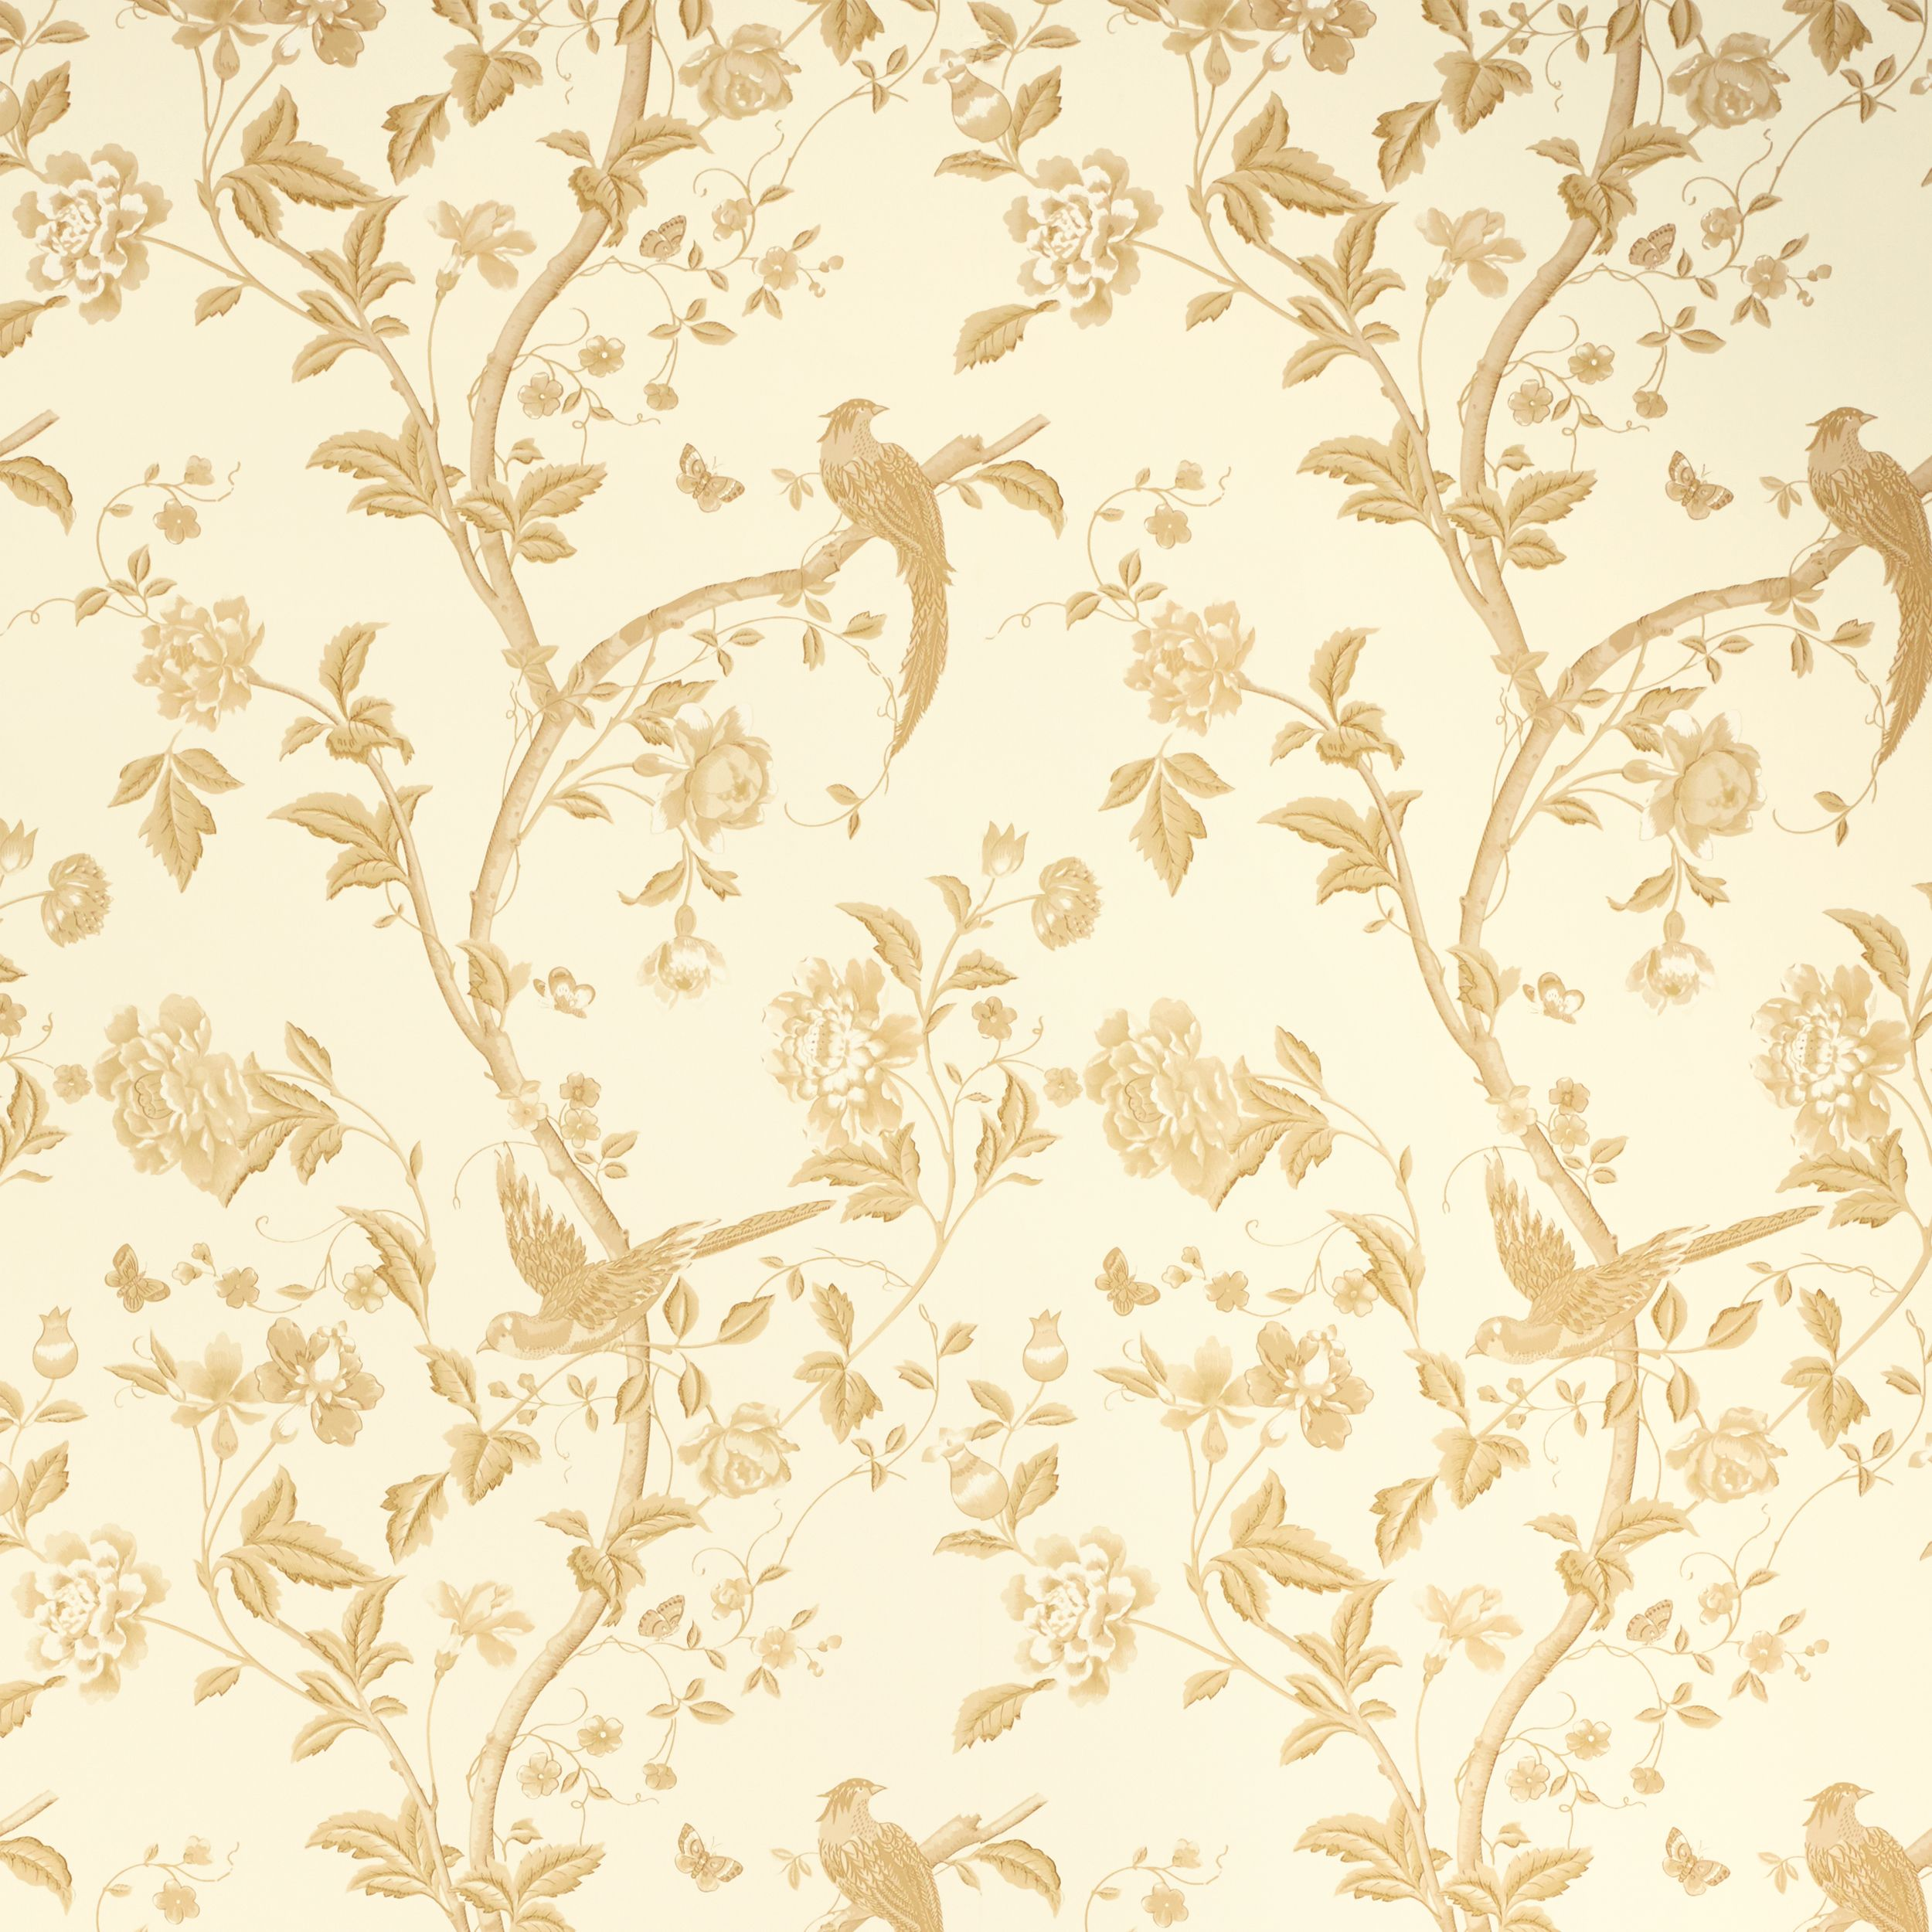 Laura Ashley Summer Palace Gold Floral Wallpaper Grey Floral